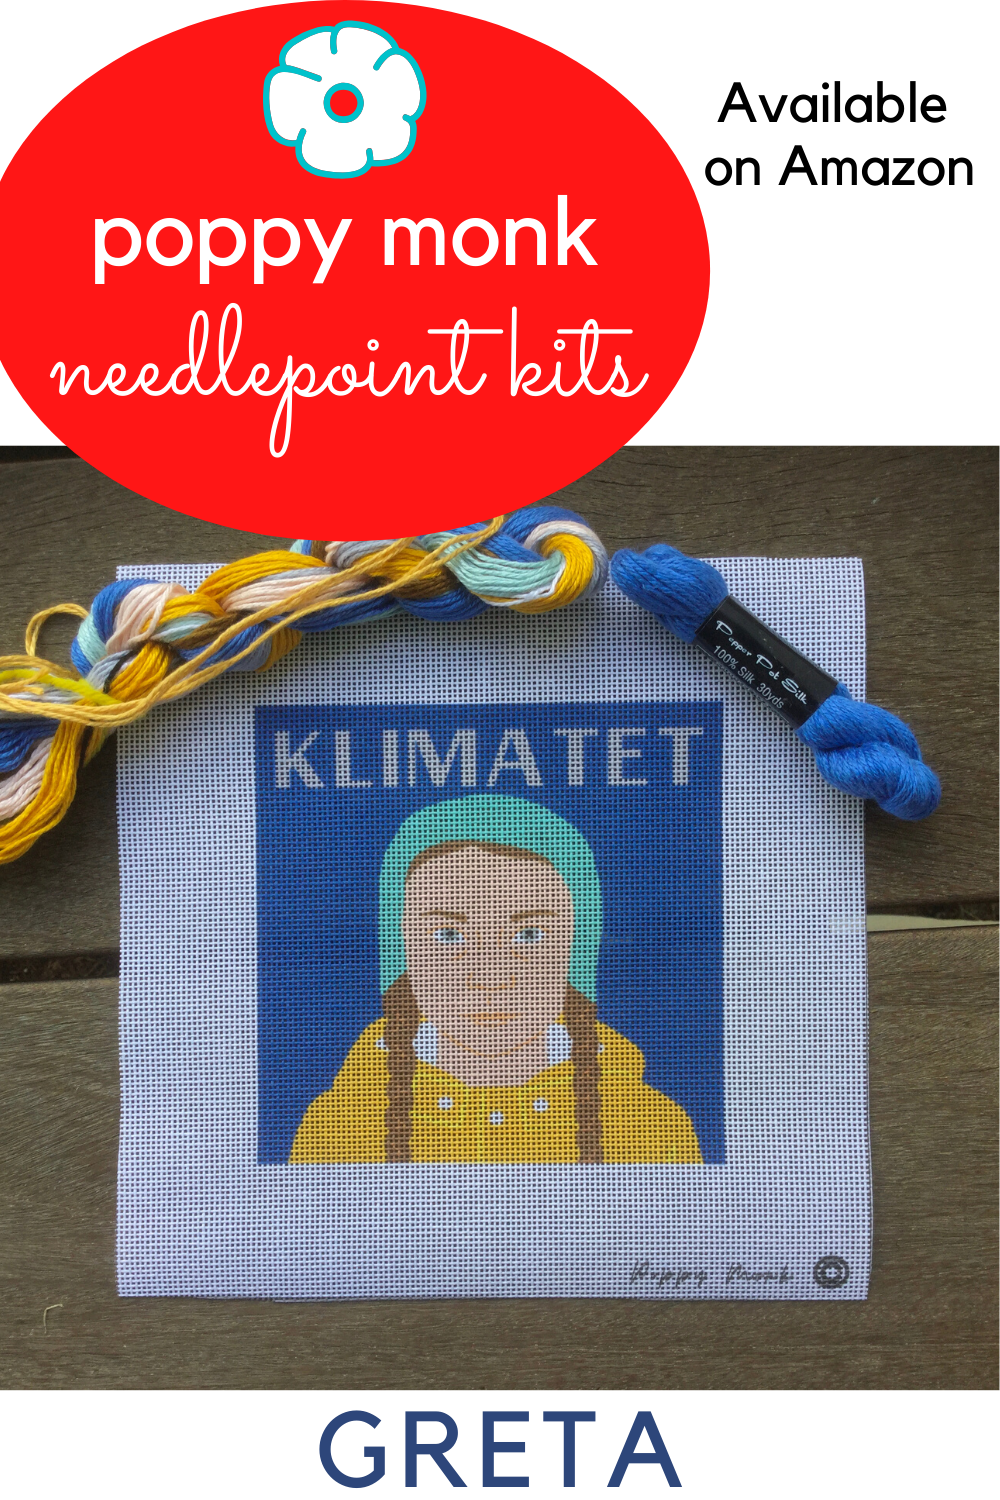 Klimatet needlepoint kit for adults Contemporary needlework tapestry craft project with strong female climate activist in leading role 5x5 design color printed on 18 mesh mono canvas silk threads